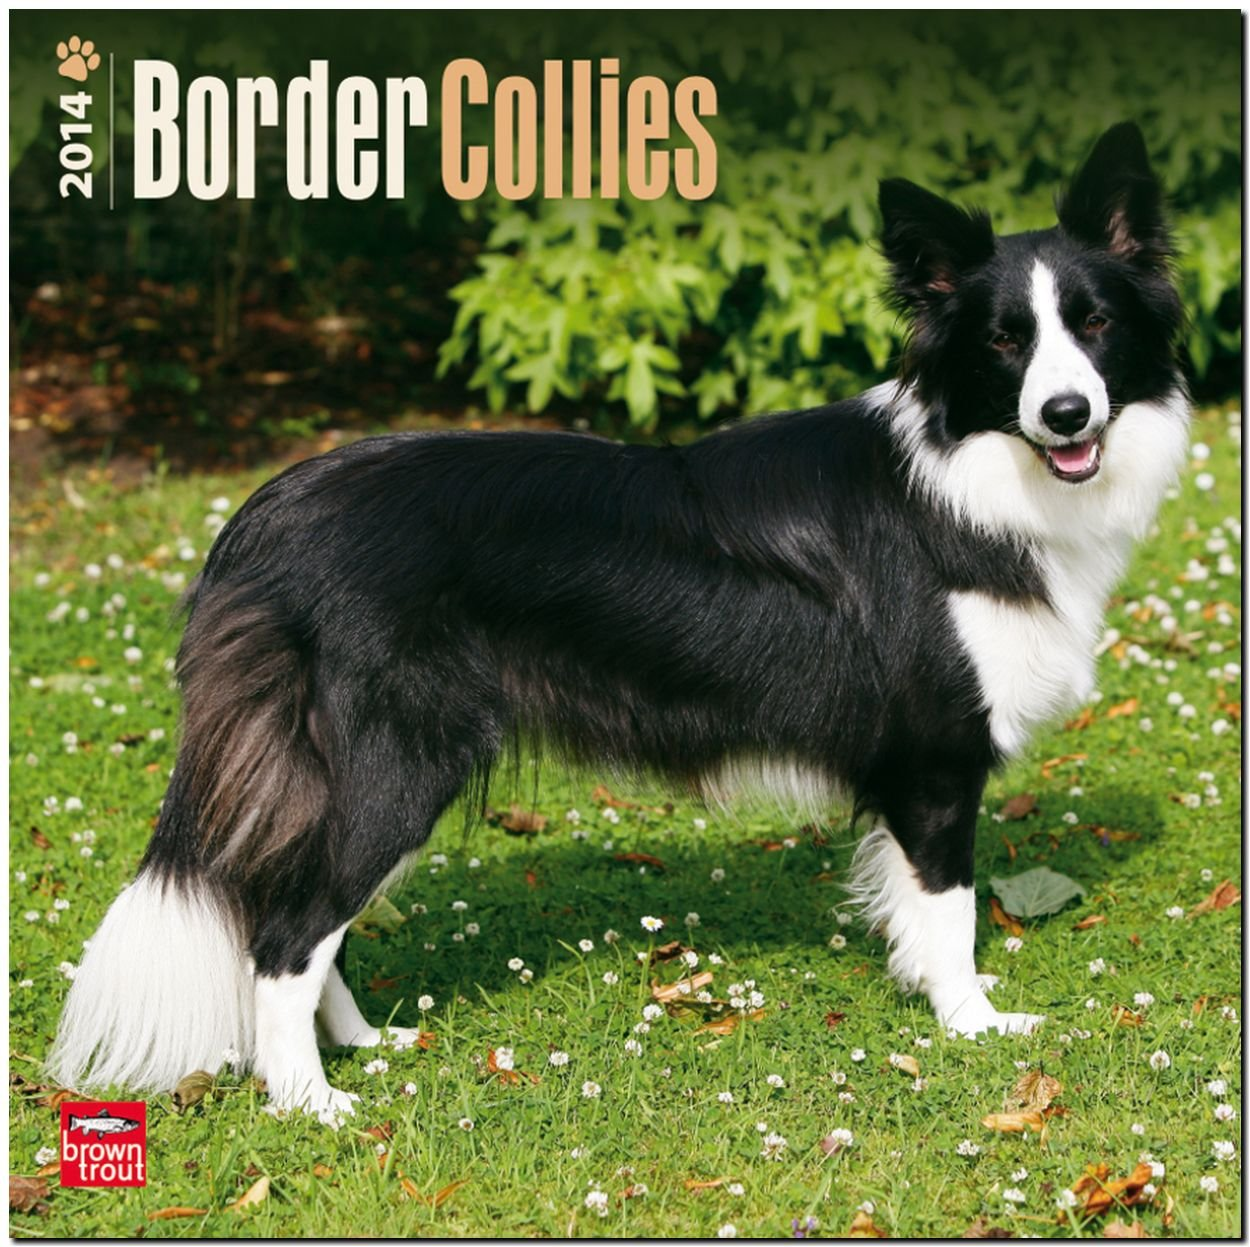 Border Collies 2014: Original BrownTrout-Kalender [Mehrsprachig] [Kalender]